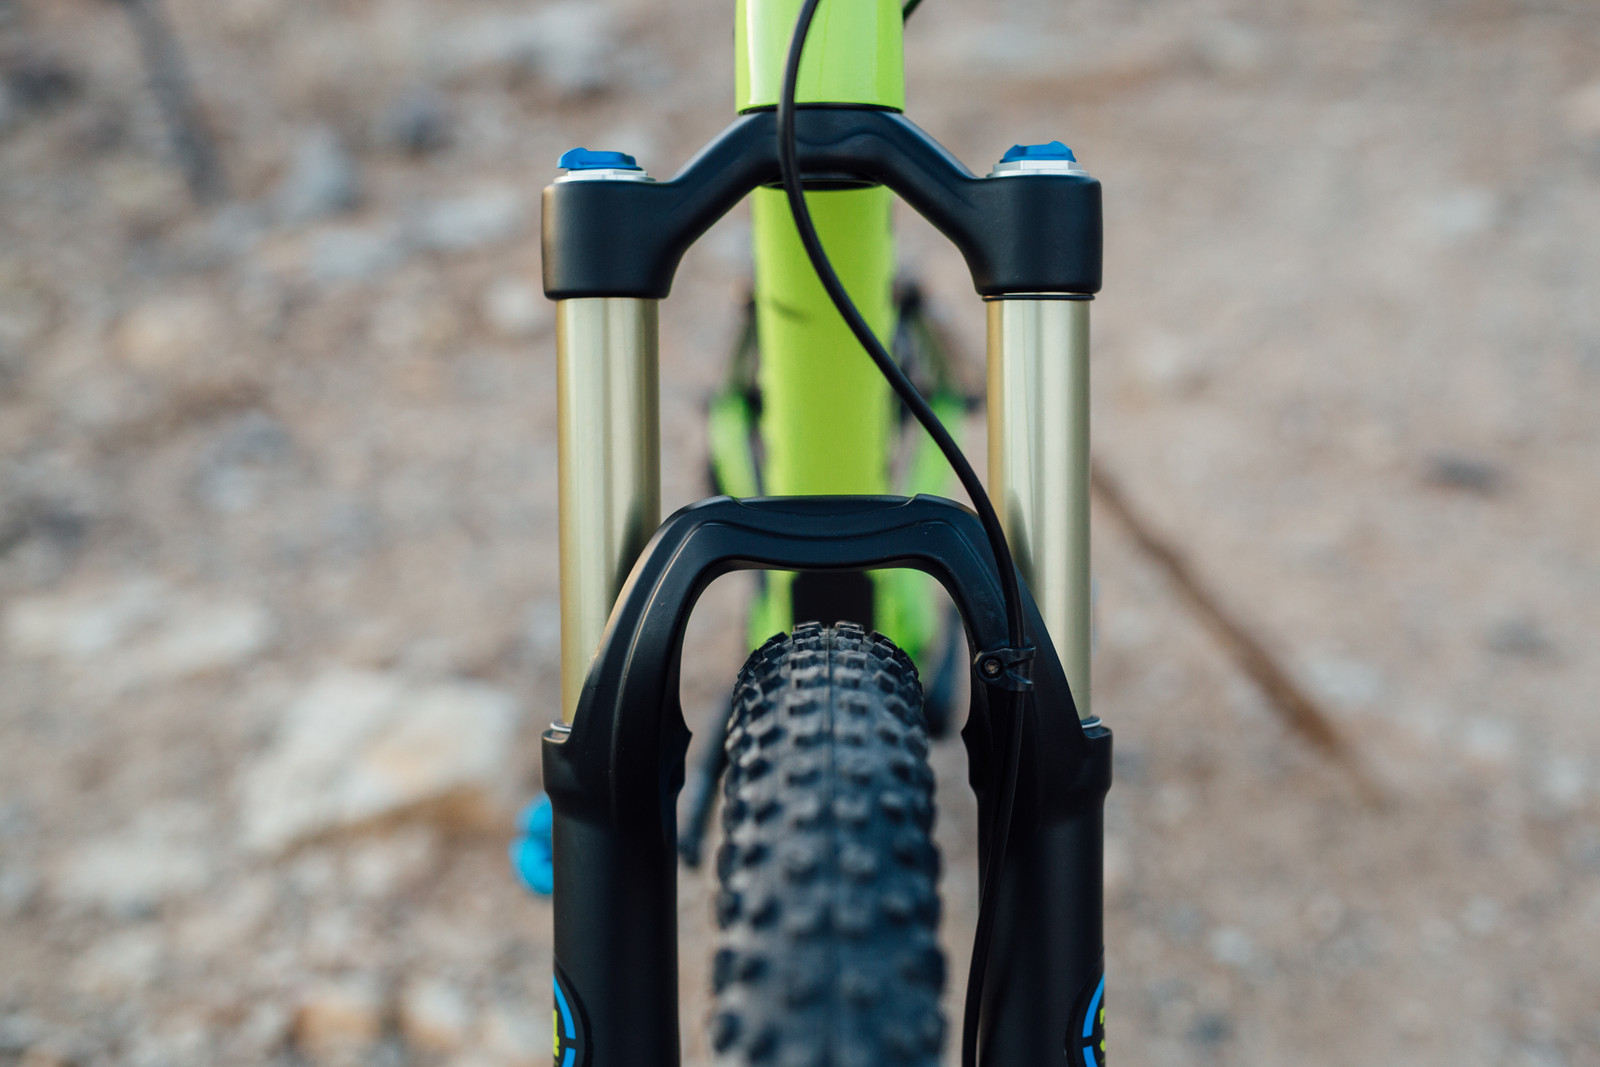 Trek Fuel EX 9 29 - 2016 Vital MTB Test Sessions - Trek Fuel EX 9 29 - 2016 Vital MTB Test Sessions - Mountain Biking Pictures - Vital MTB